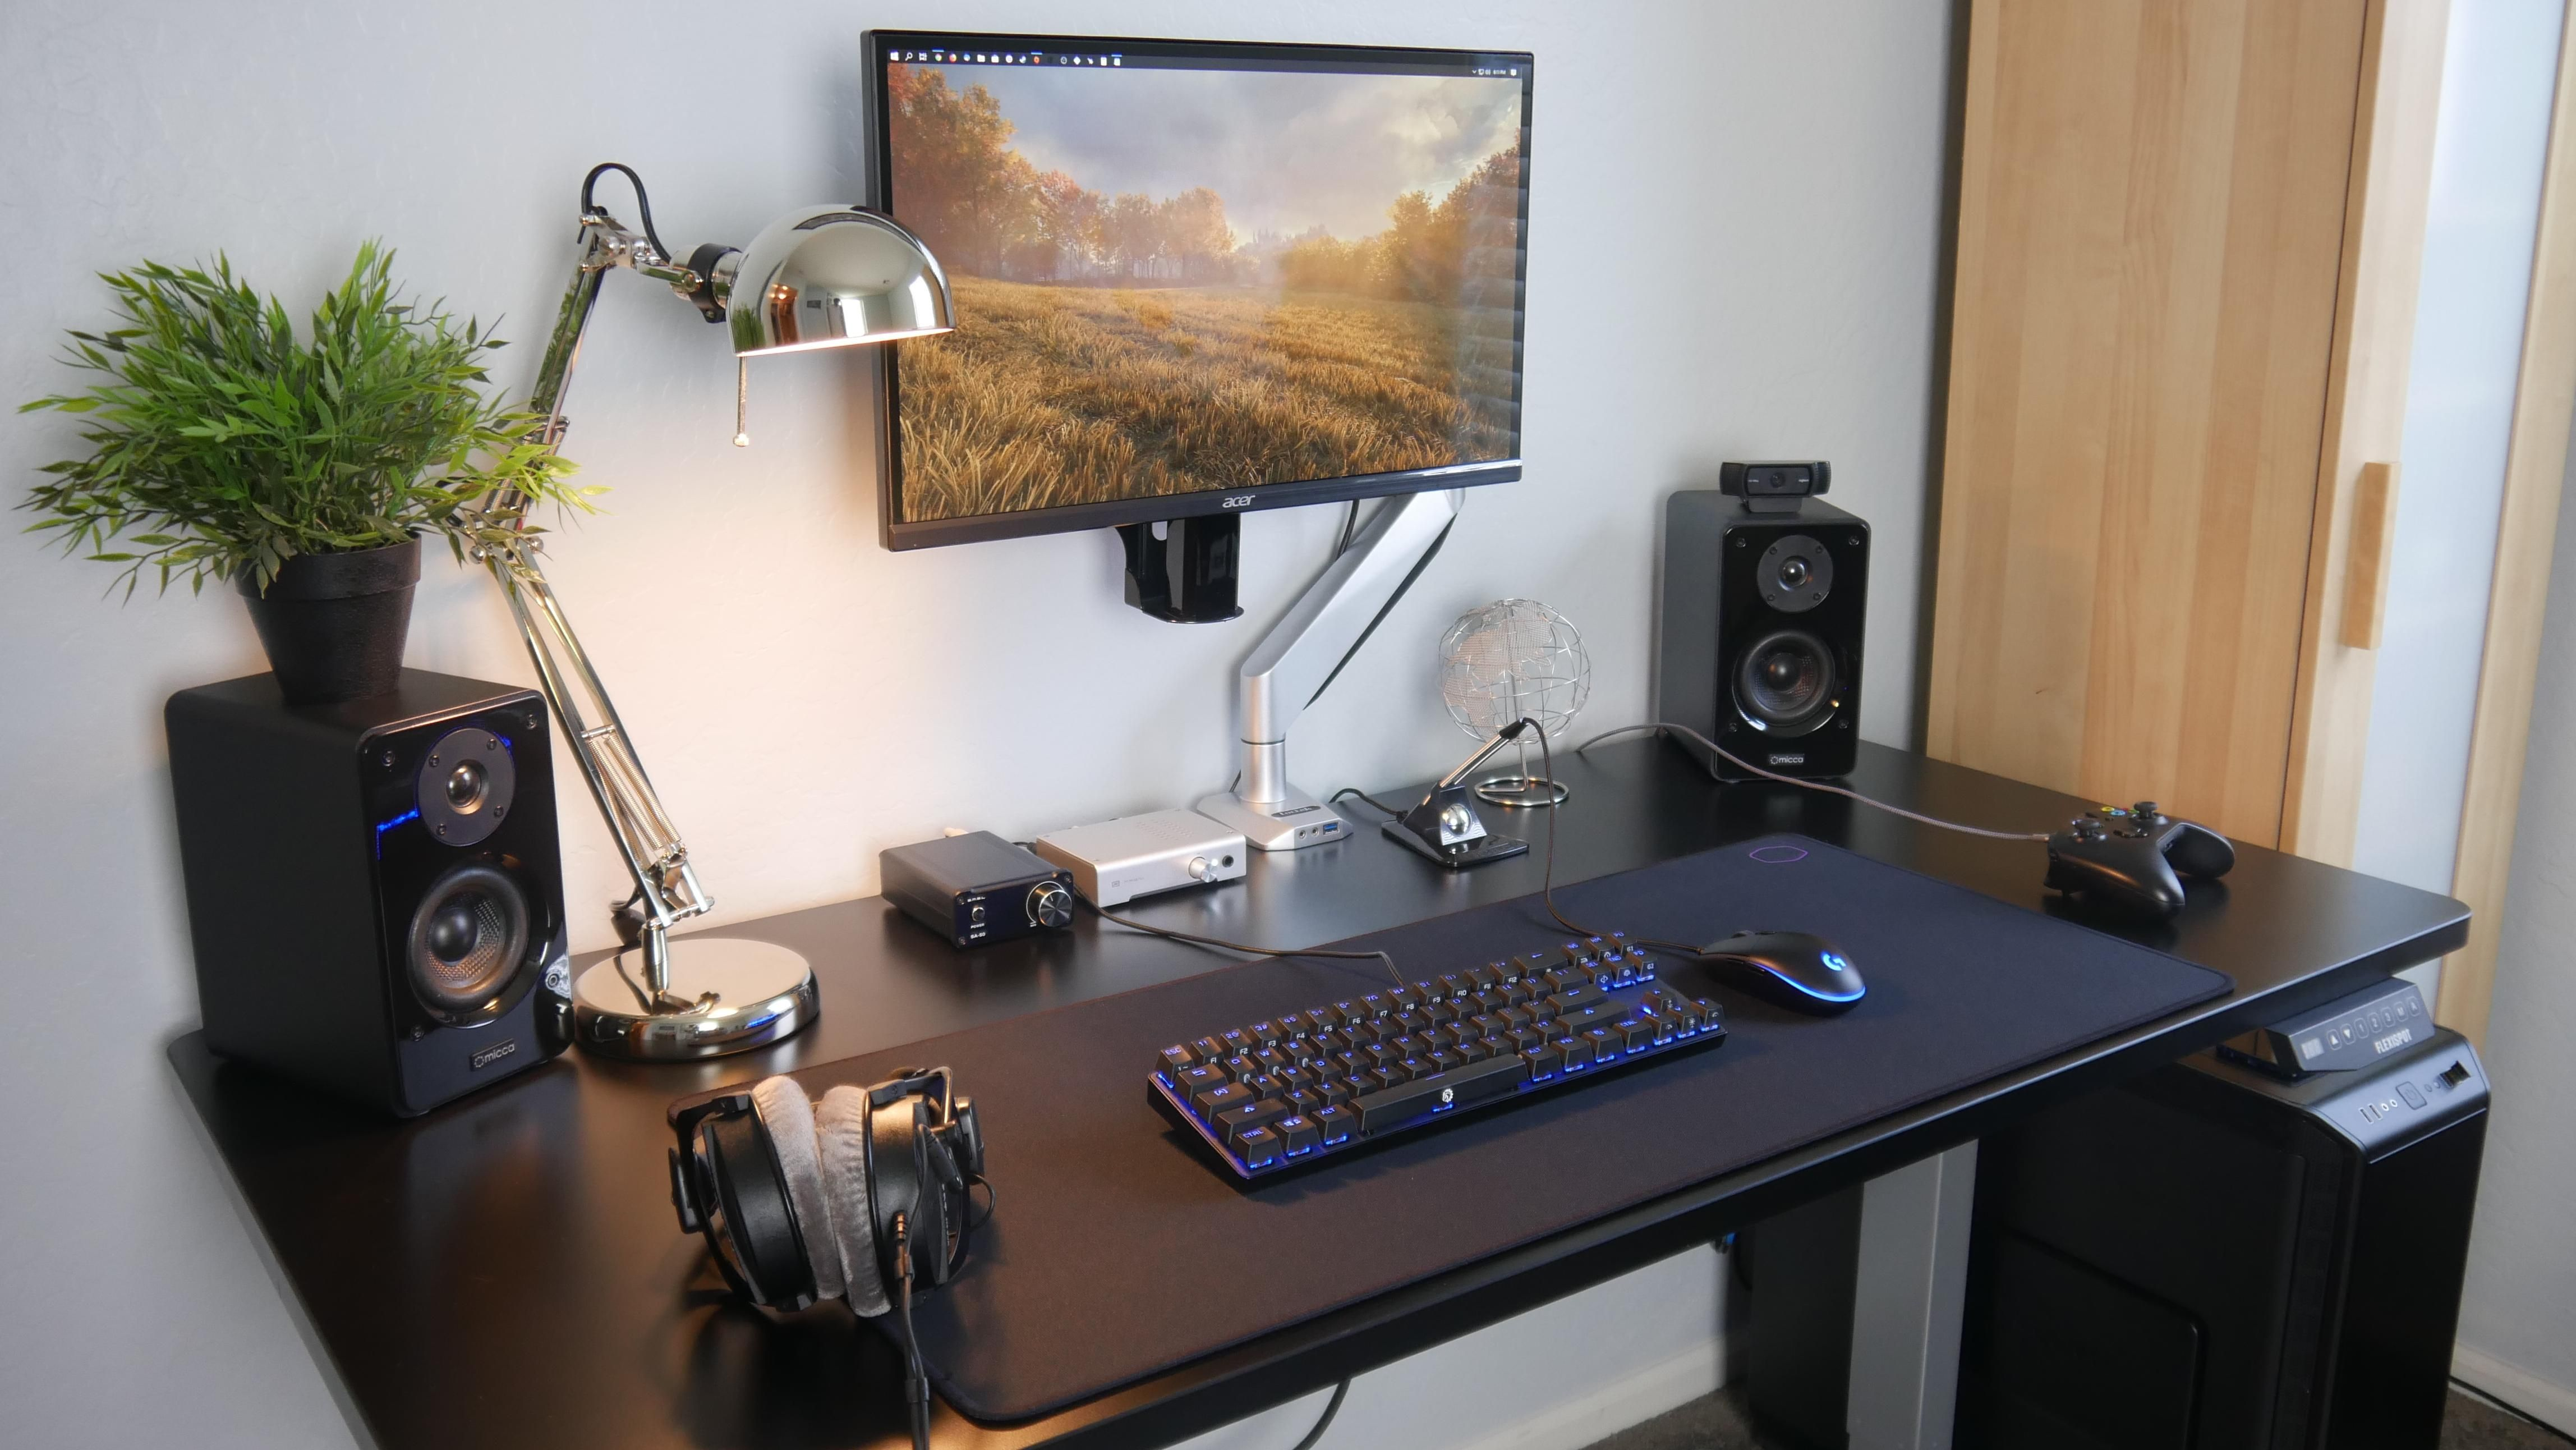 My Single Monitor SitStand Desk Setup Desk setup, Sit